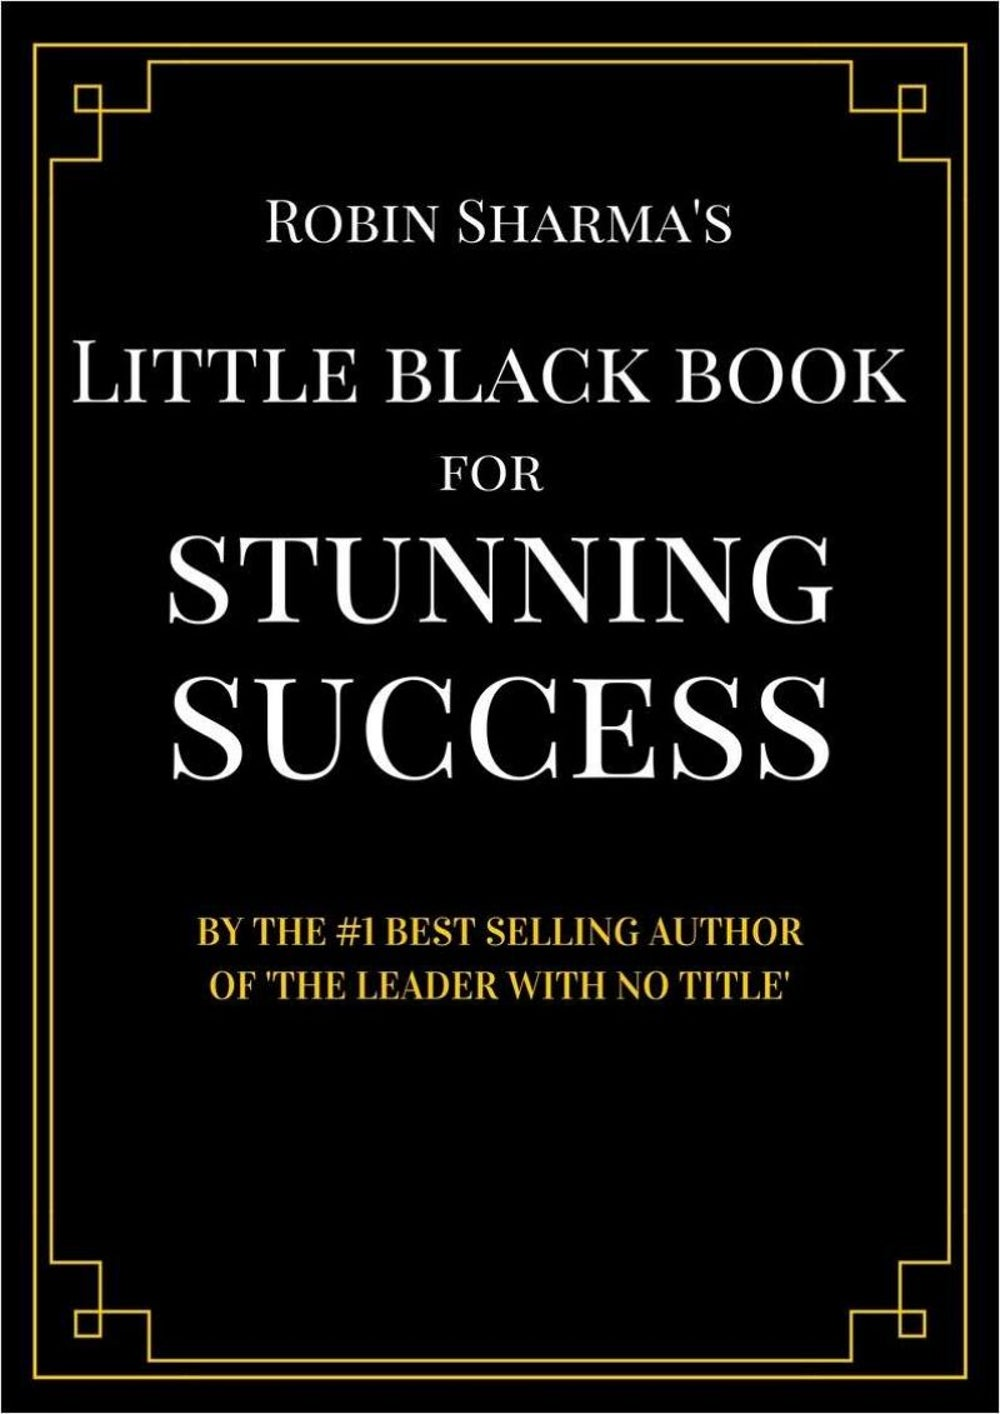 Robin Sharma's Little Black Book for Stunning Success